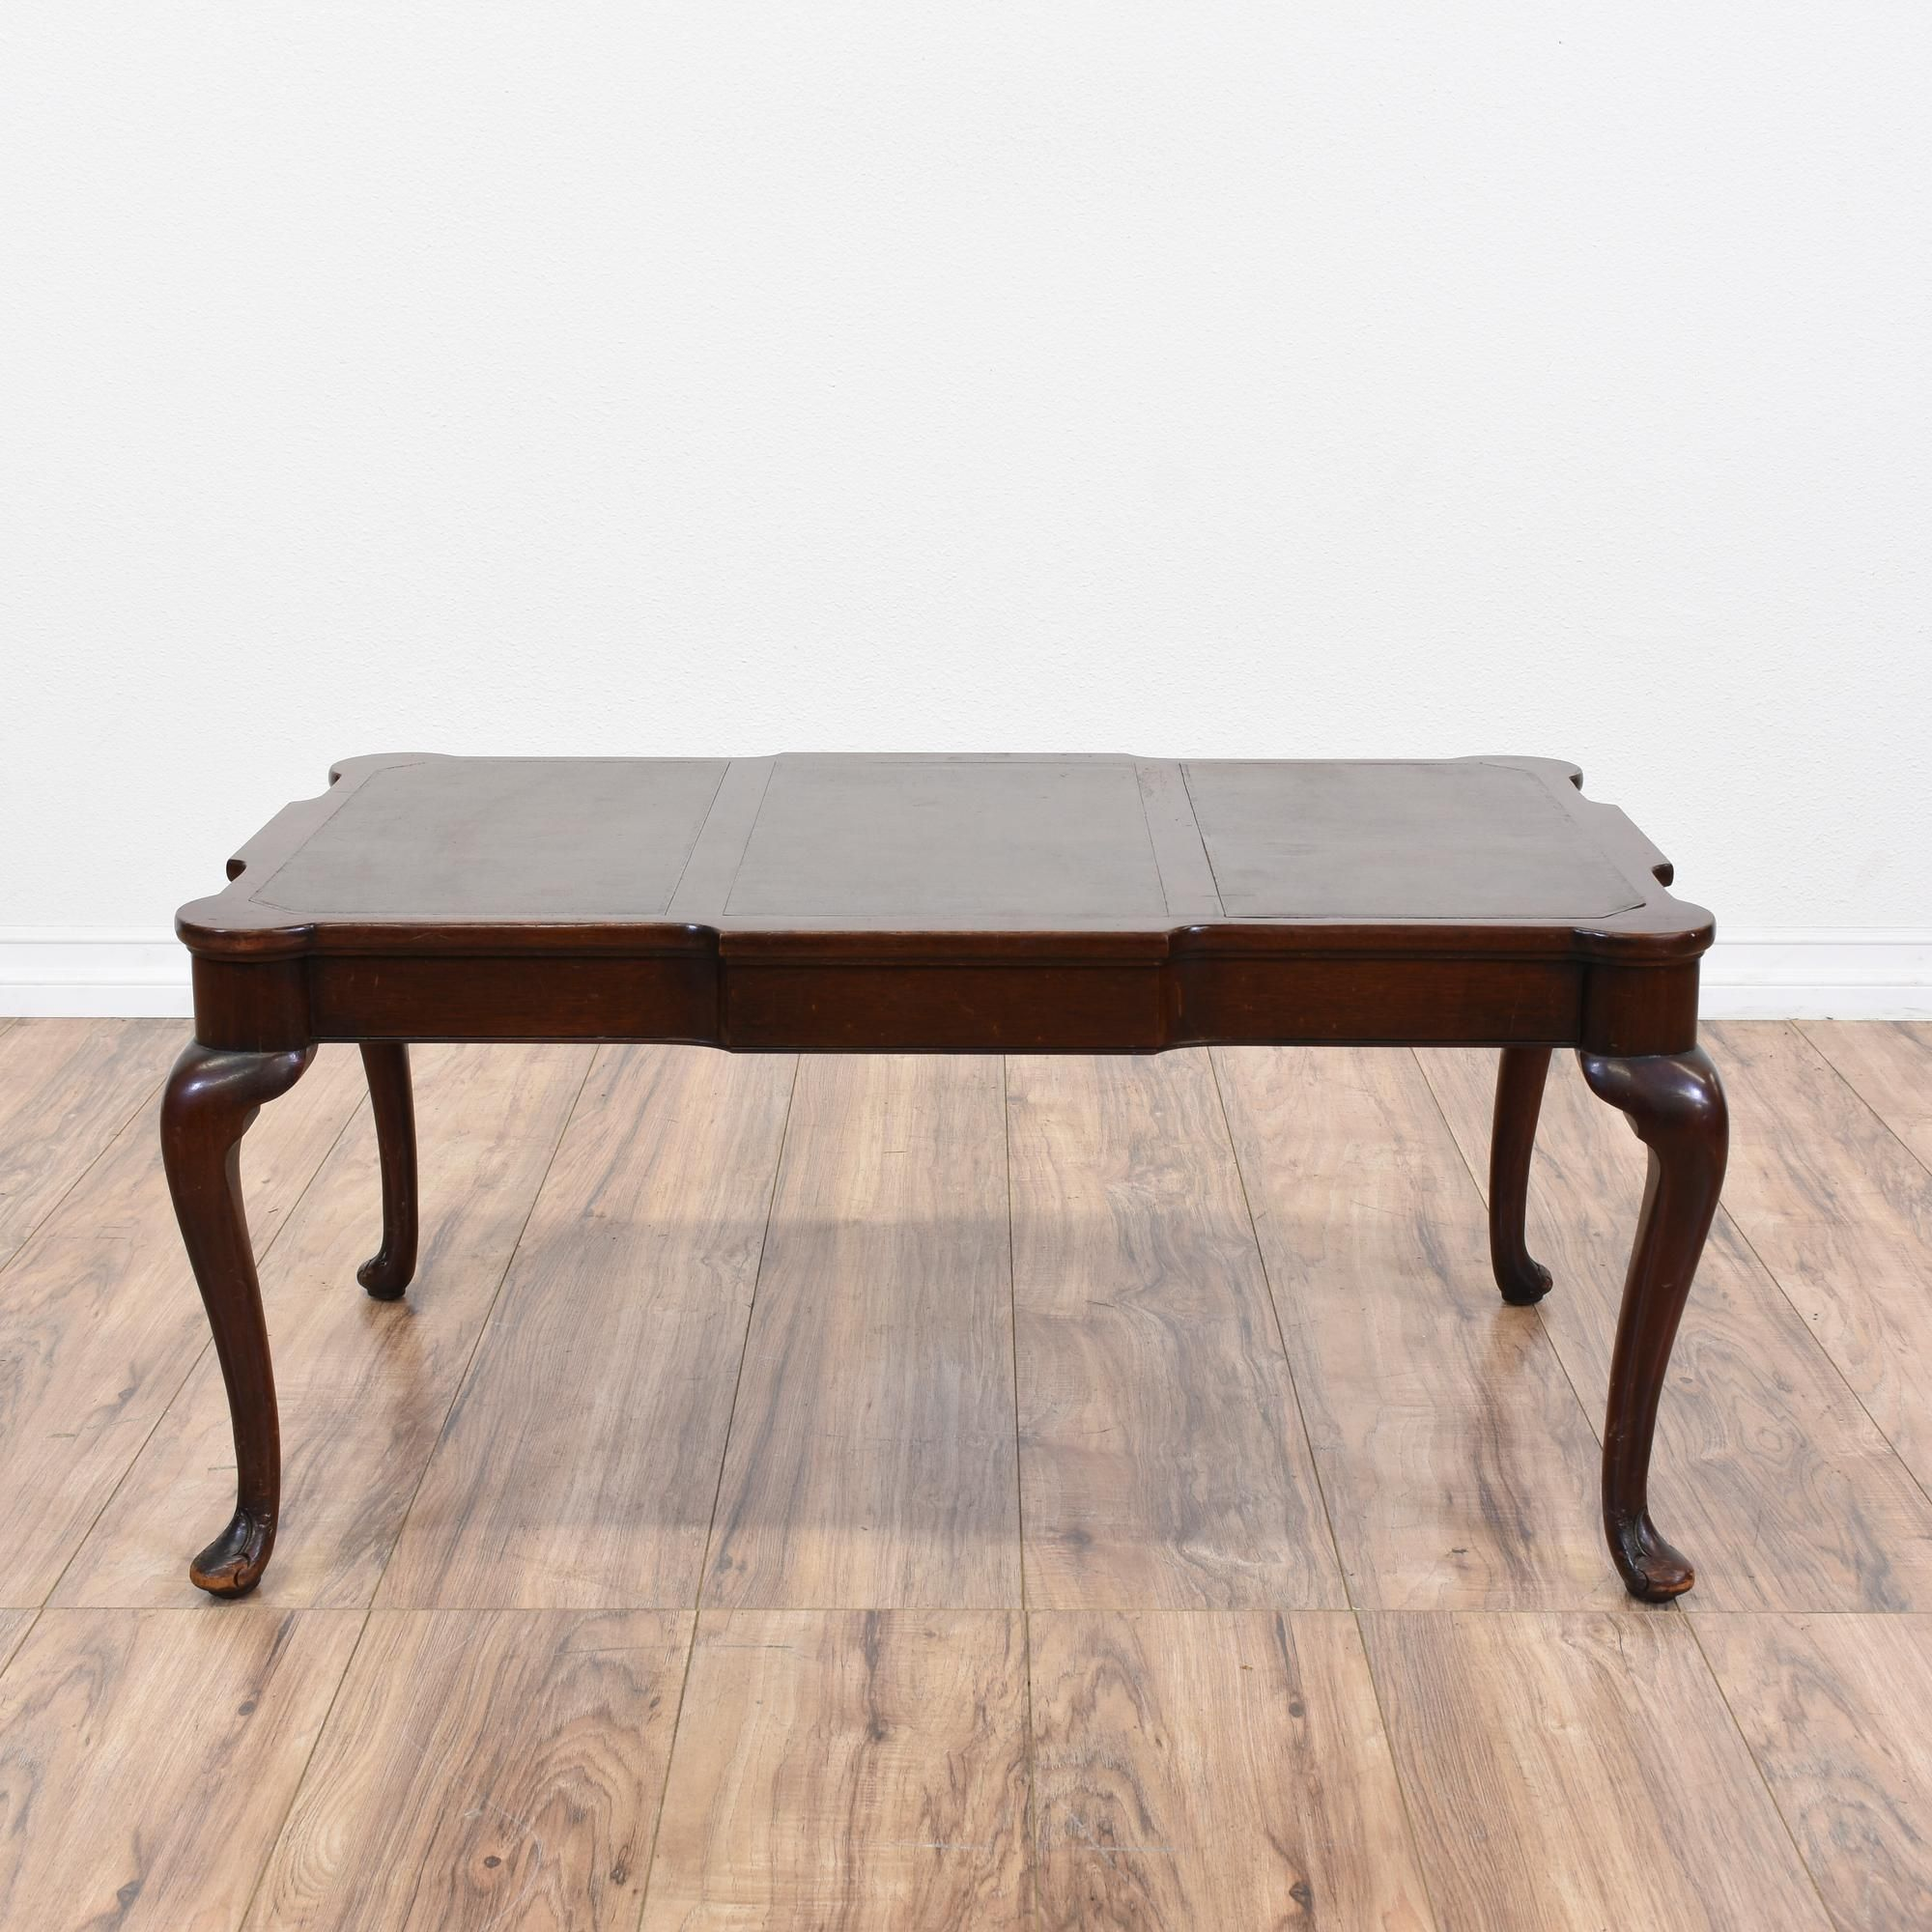 Etonnant This Queen Anne Style Coffee Table Is Featured In A Solid Wood With A  Glossy Dark